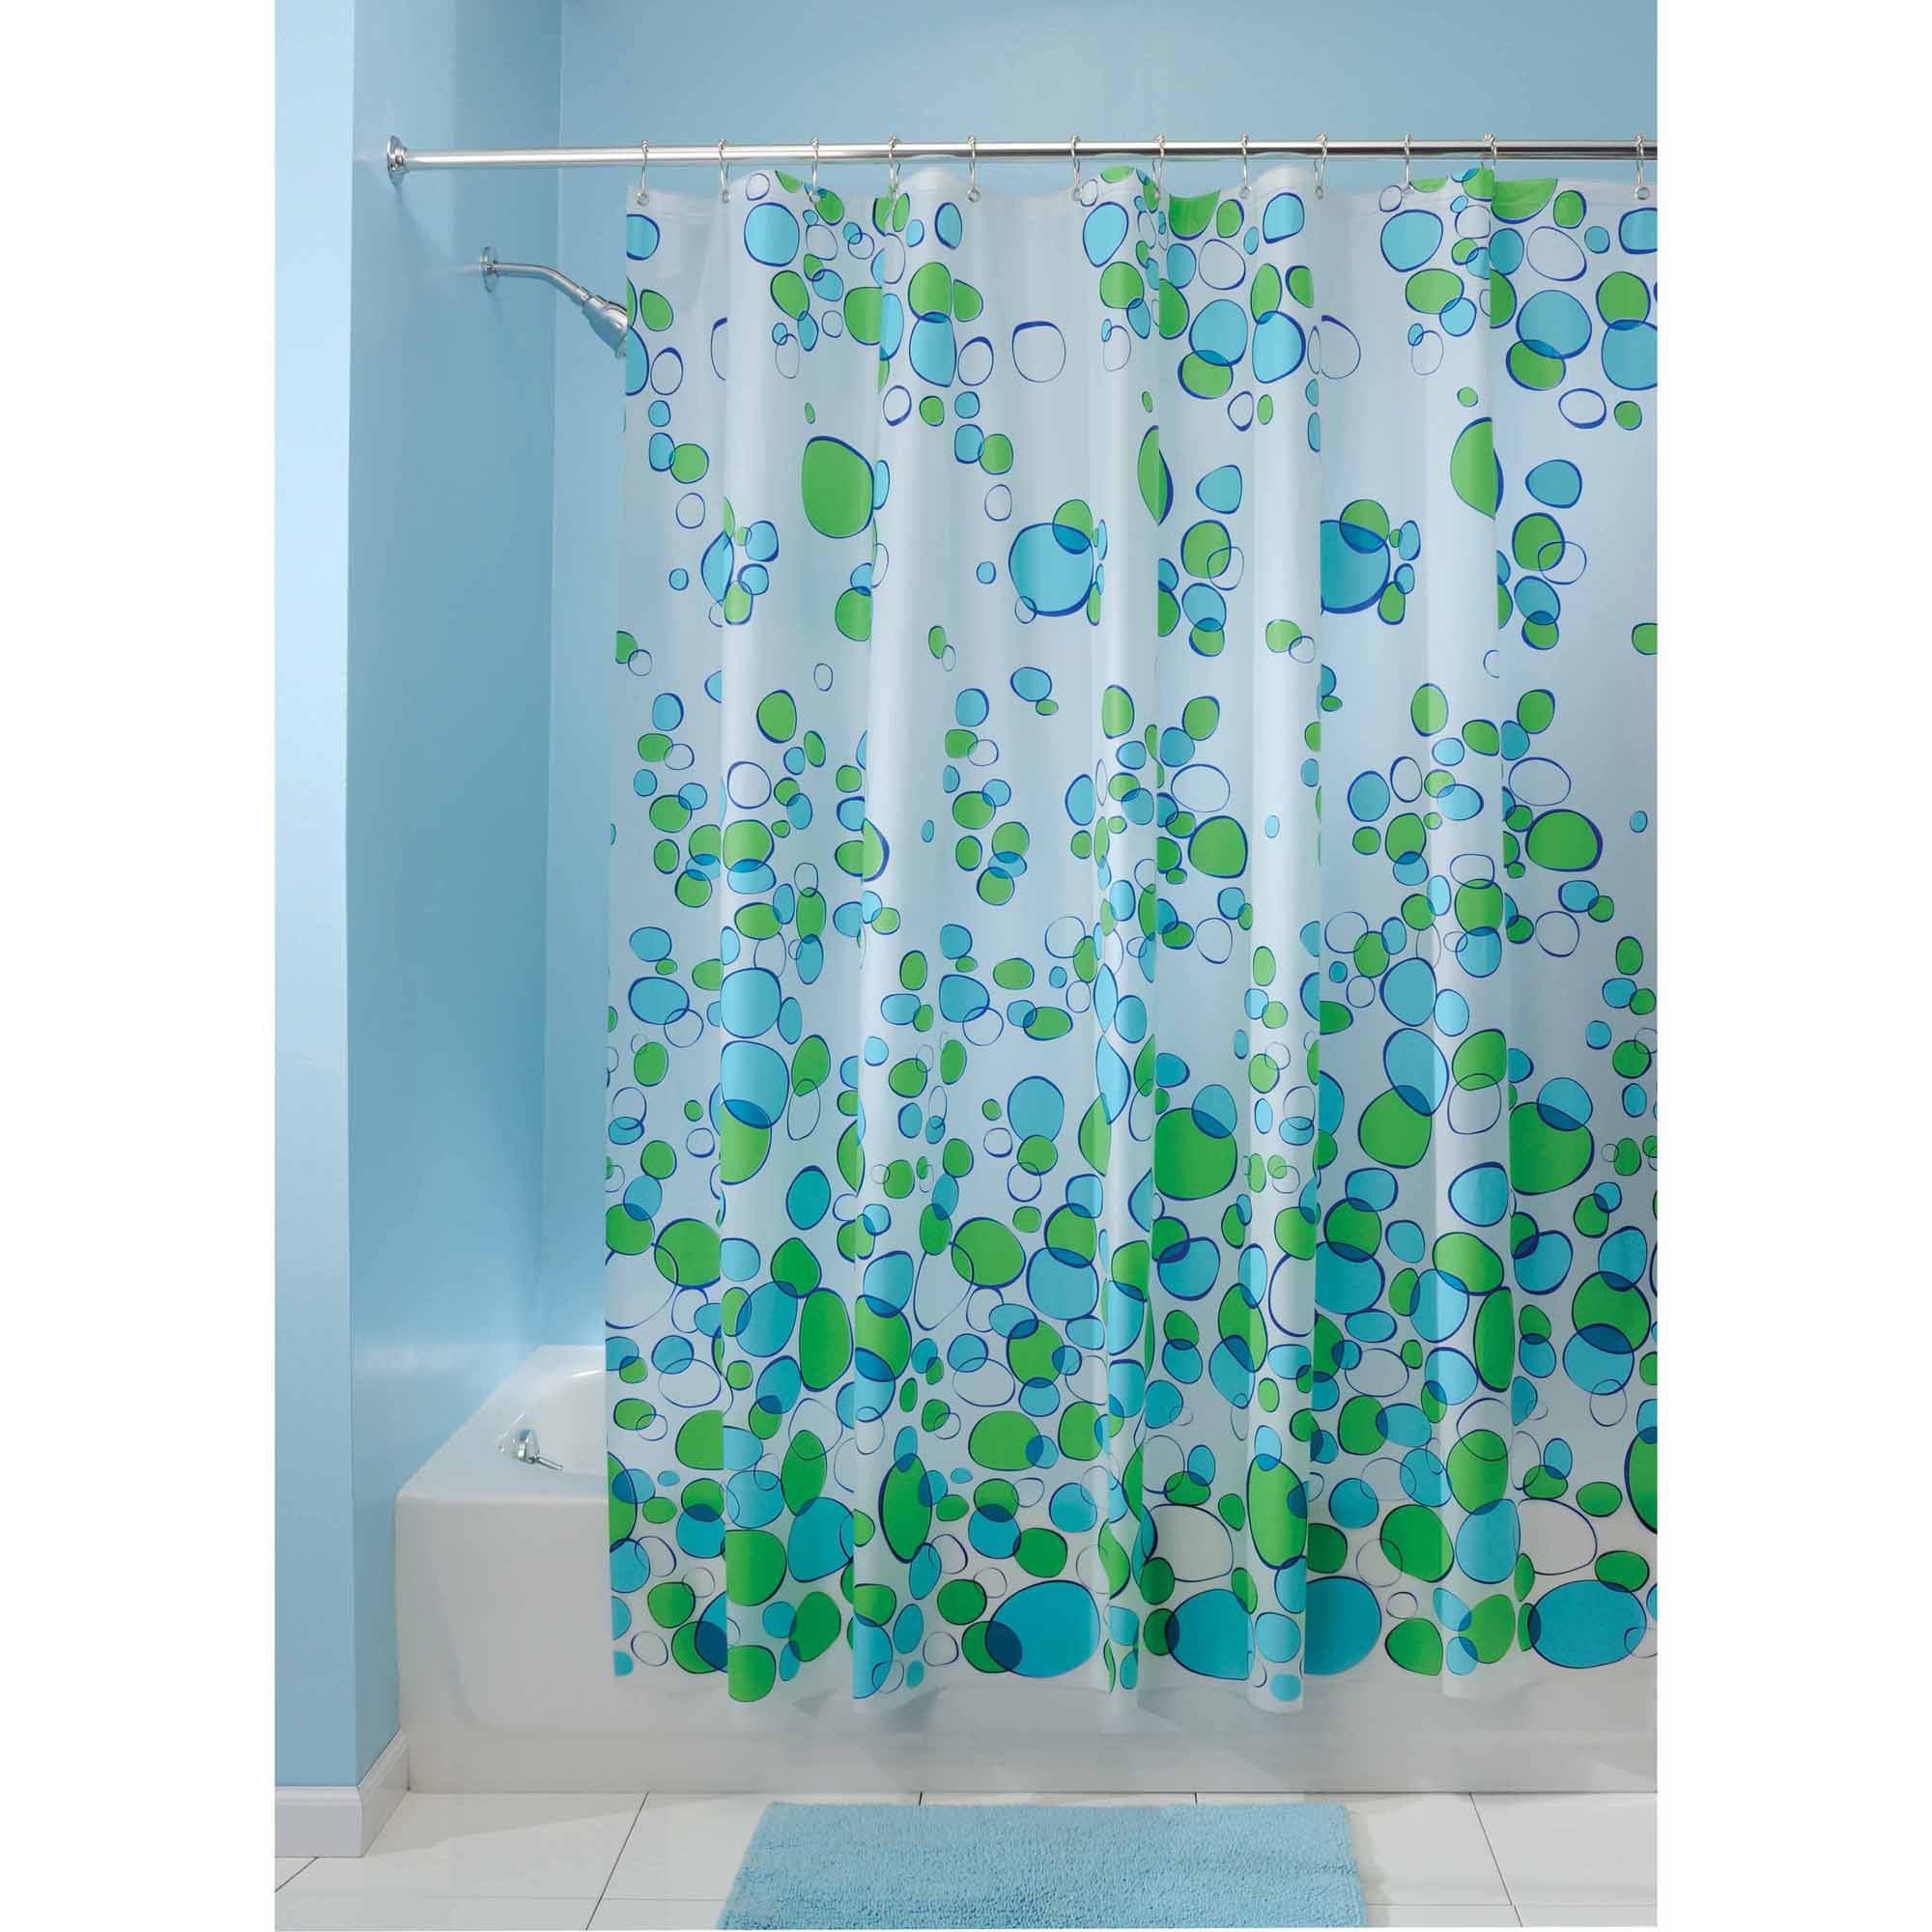 InterDesign Bubblz Shower Curtain